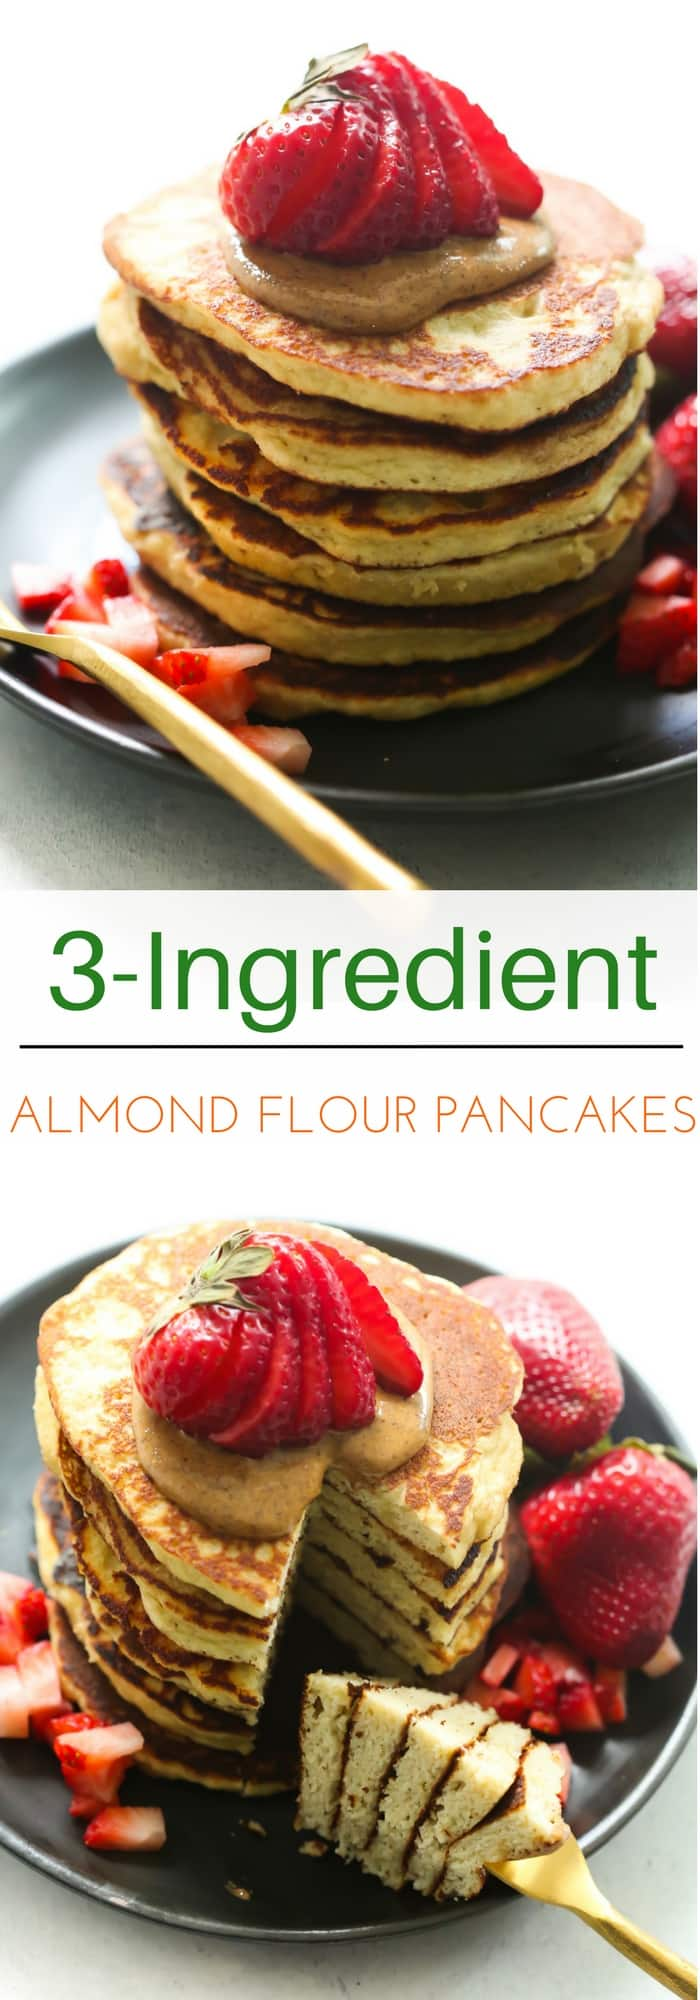 3-Ingredient Almond Flour Pancake recipe - This 3-ingredient Almond Flour Pancake recipe is made in a blender, packed with protein and it's gluten/sugar-free!